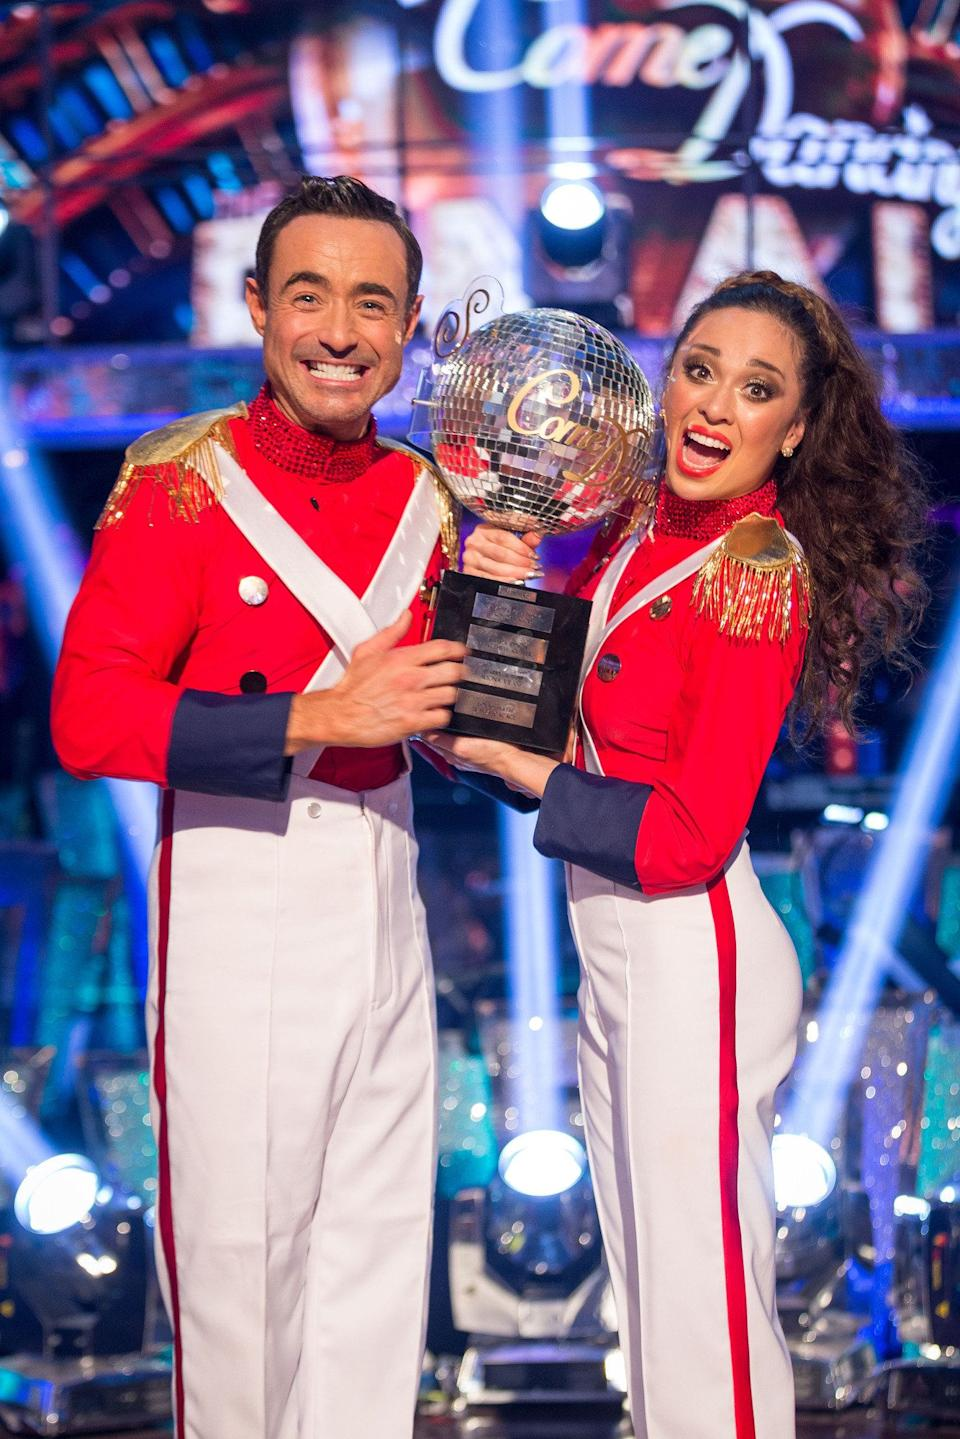 'Holby City' actor Joe was the dark horse of the competition, rising through the ranks as the weeks went on to triumph over Alexandra Burke, Debbie McGee and Gemma Atkinson in the 2017 final.